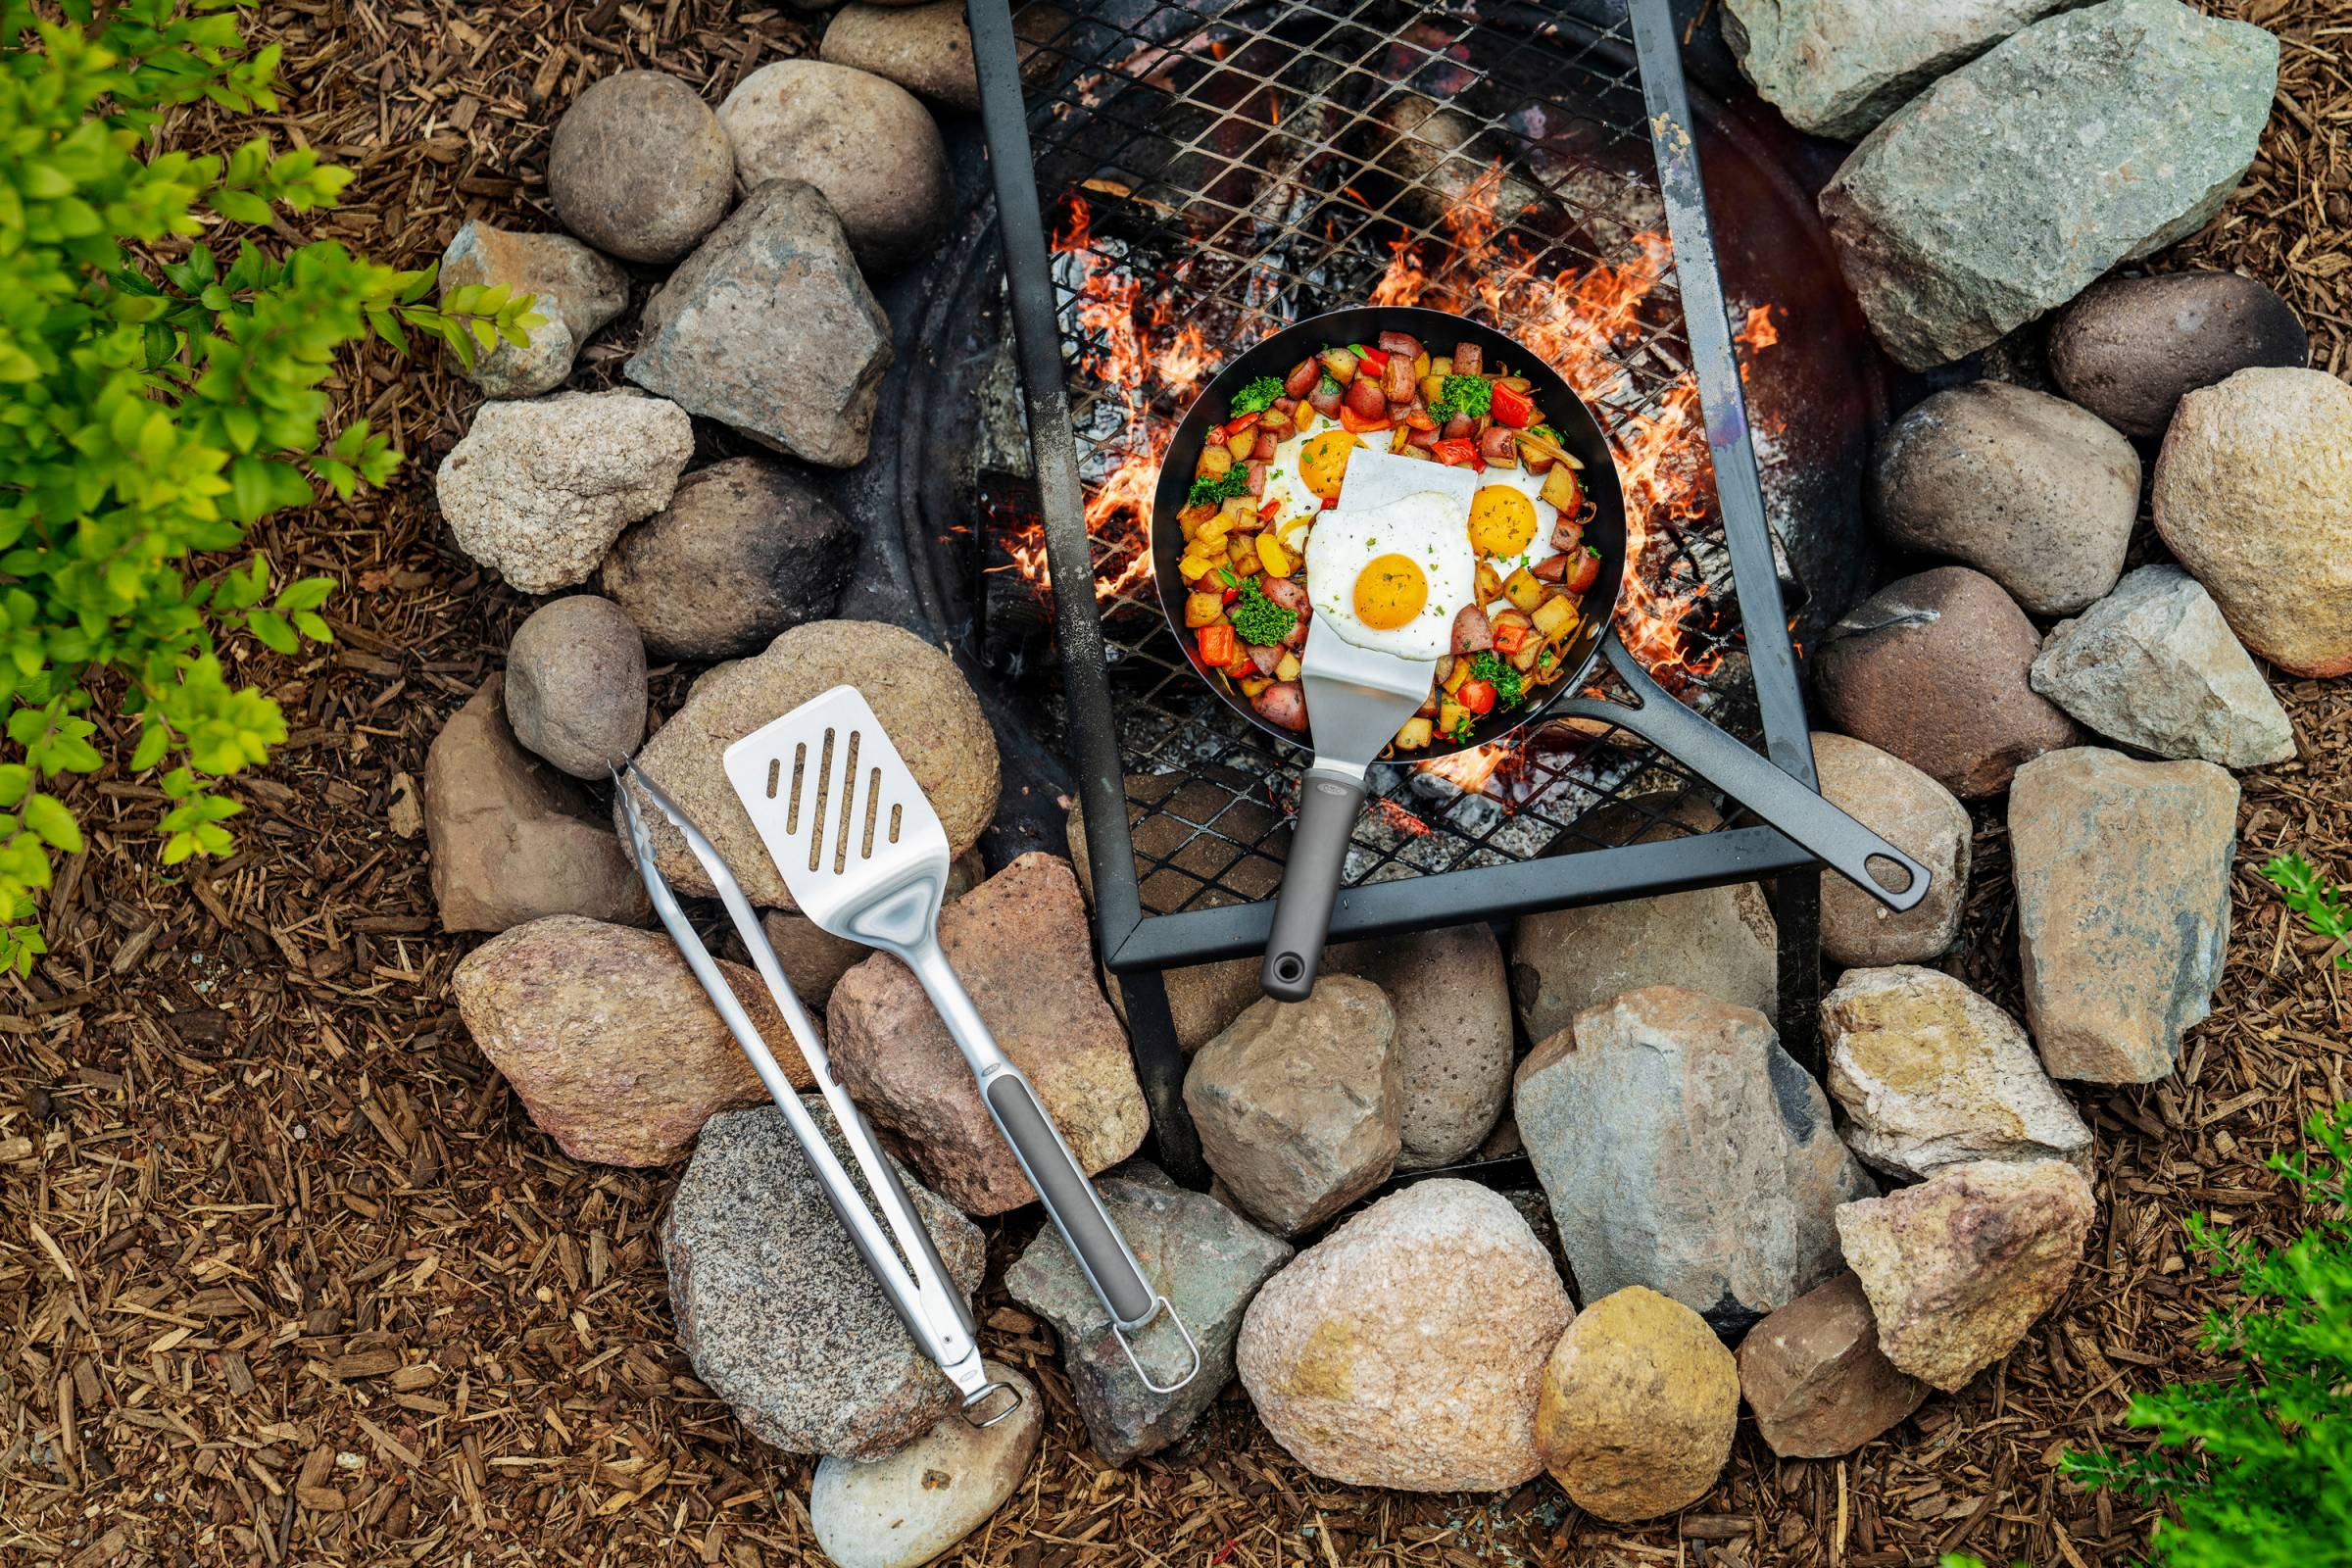 Frying pan on campfire